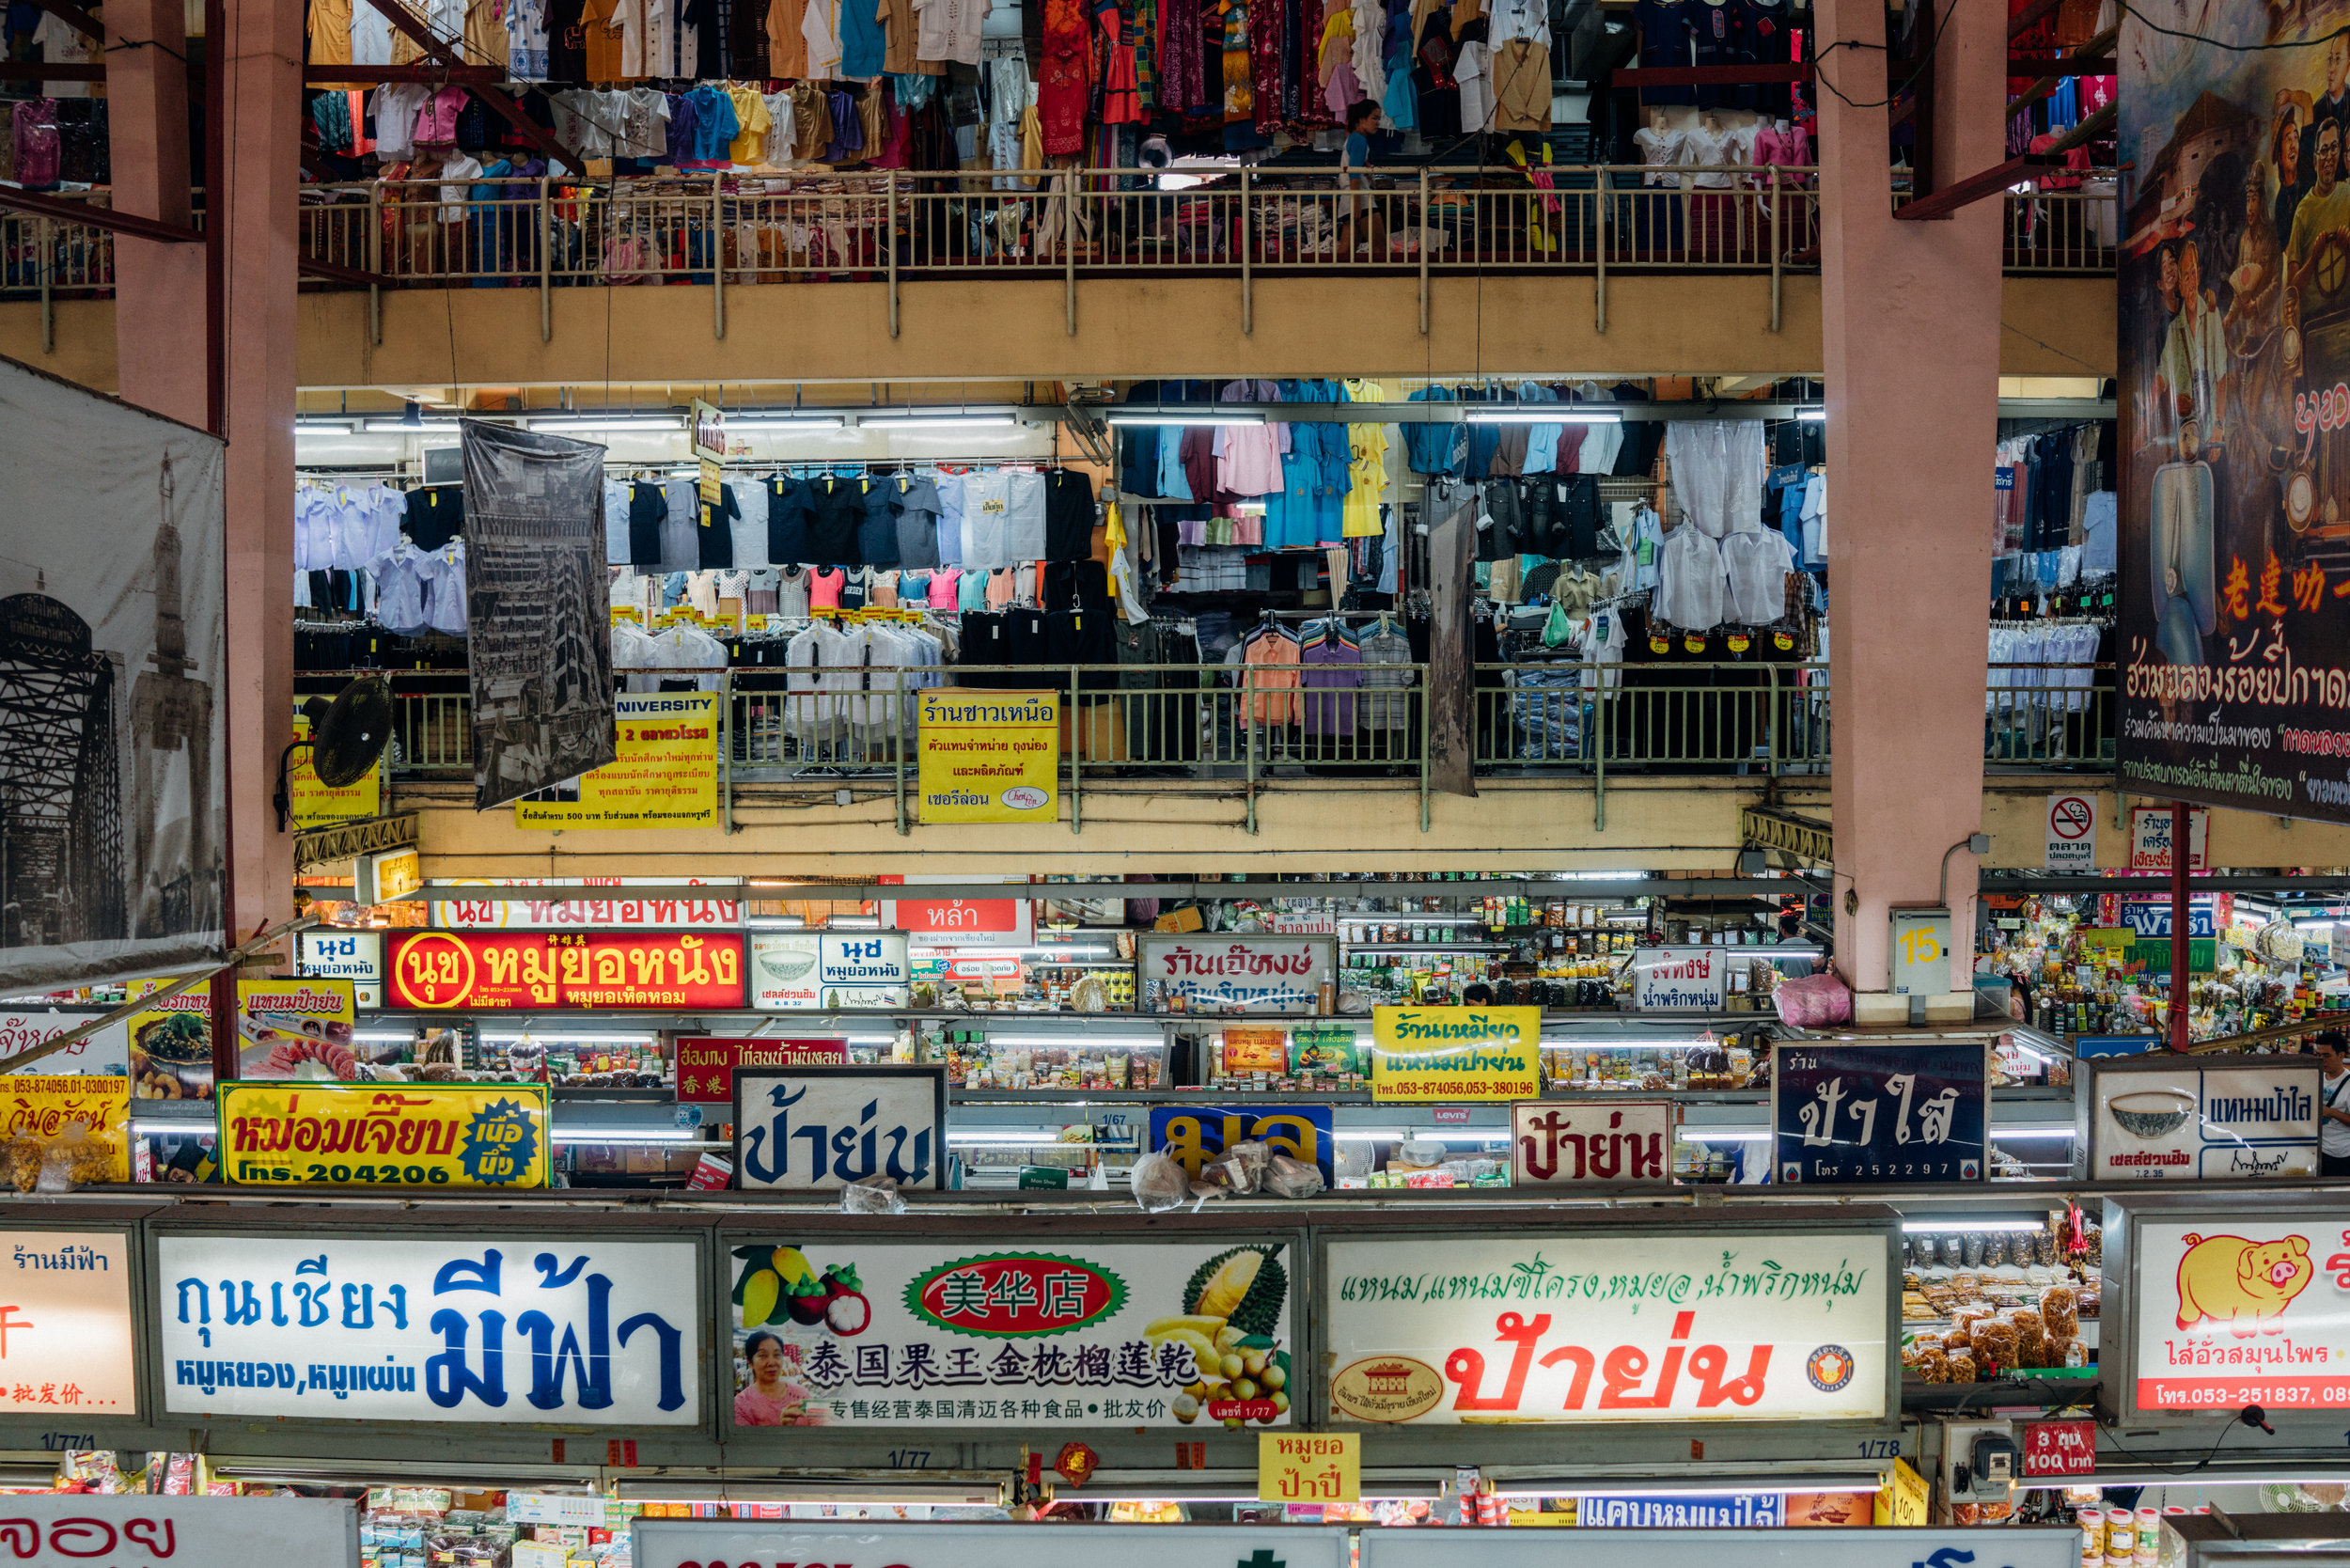 Food, clothes, groceries, all under one roof at Warorot Market, Chiang Mai